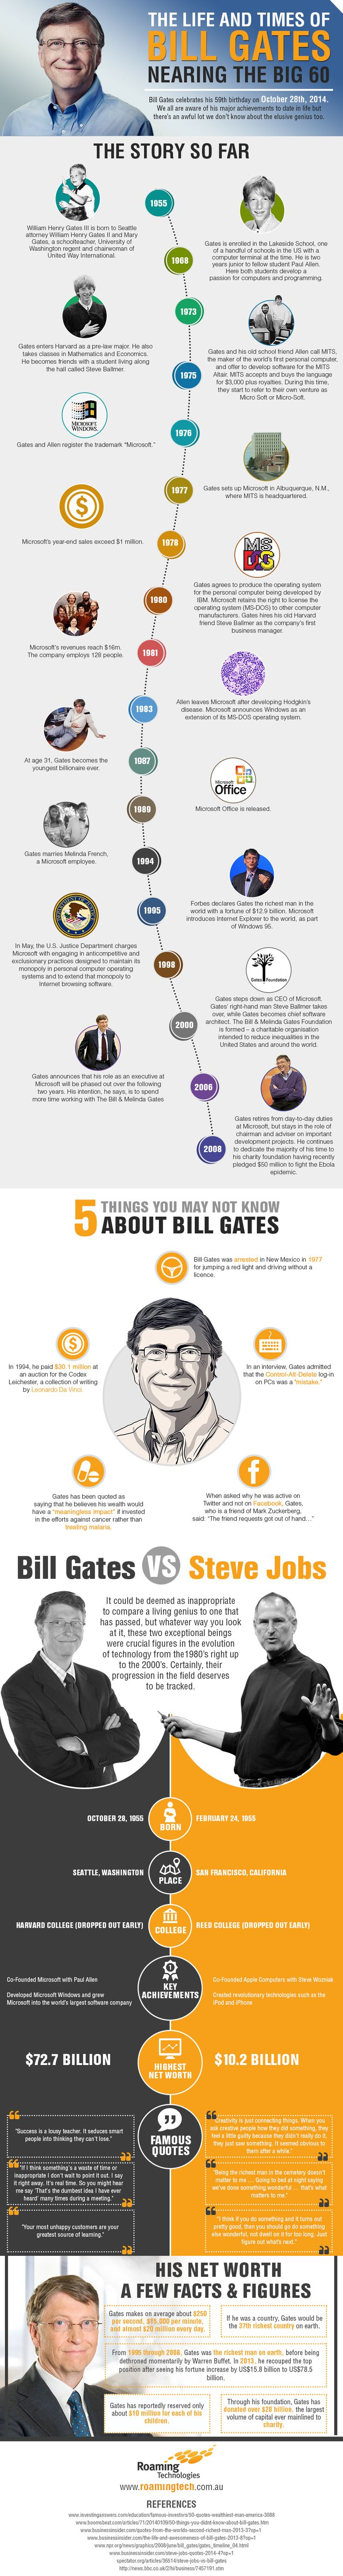 The Life and Times of Bill Gates (Infographic)